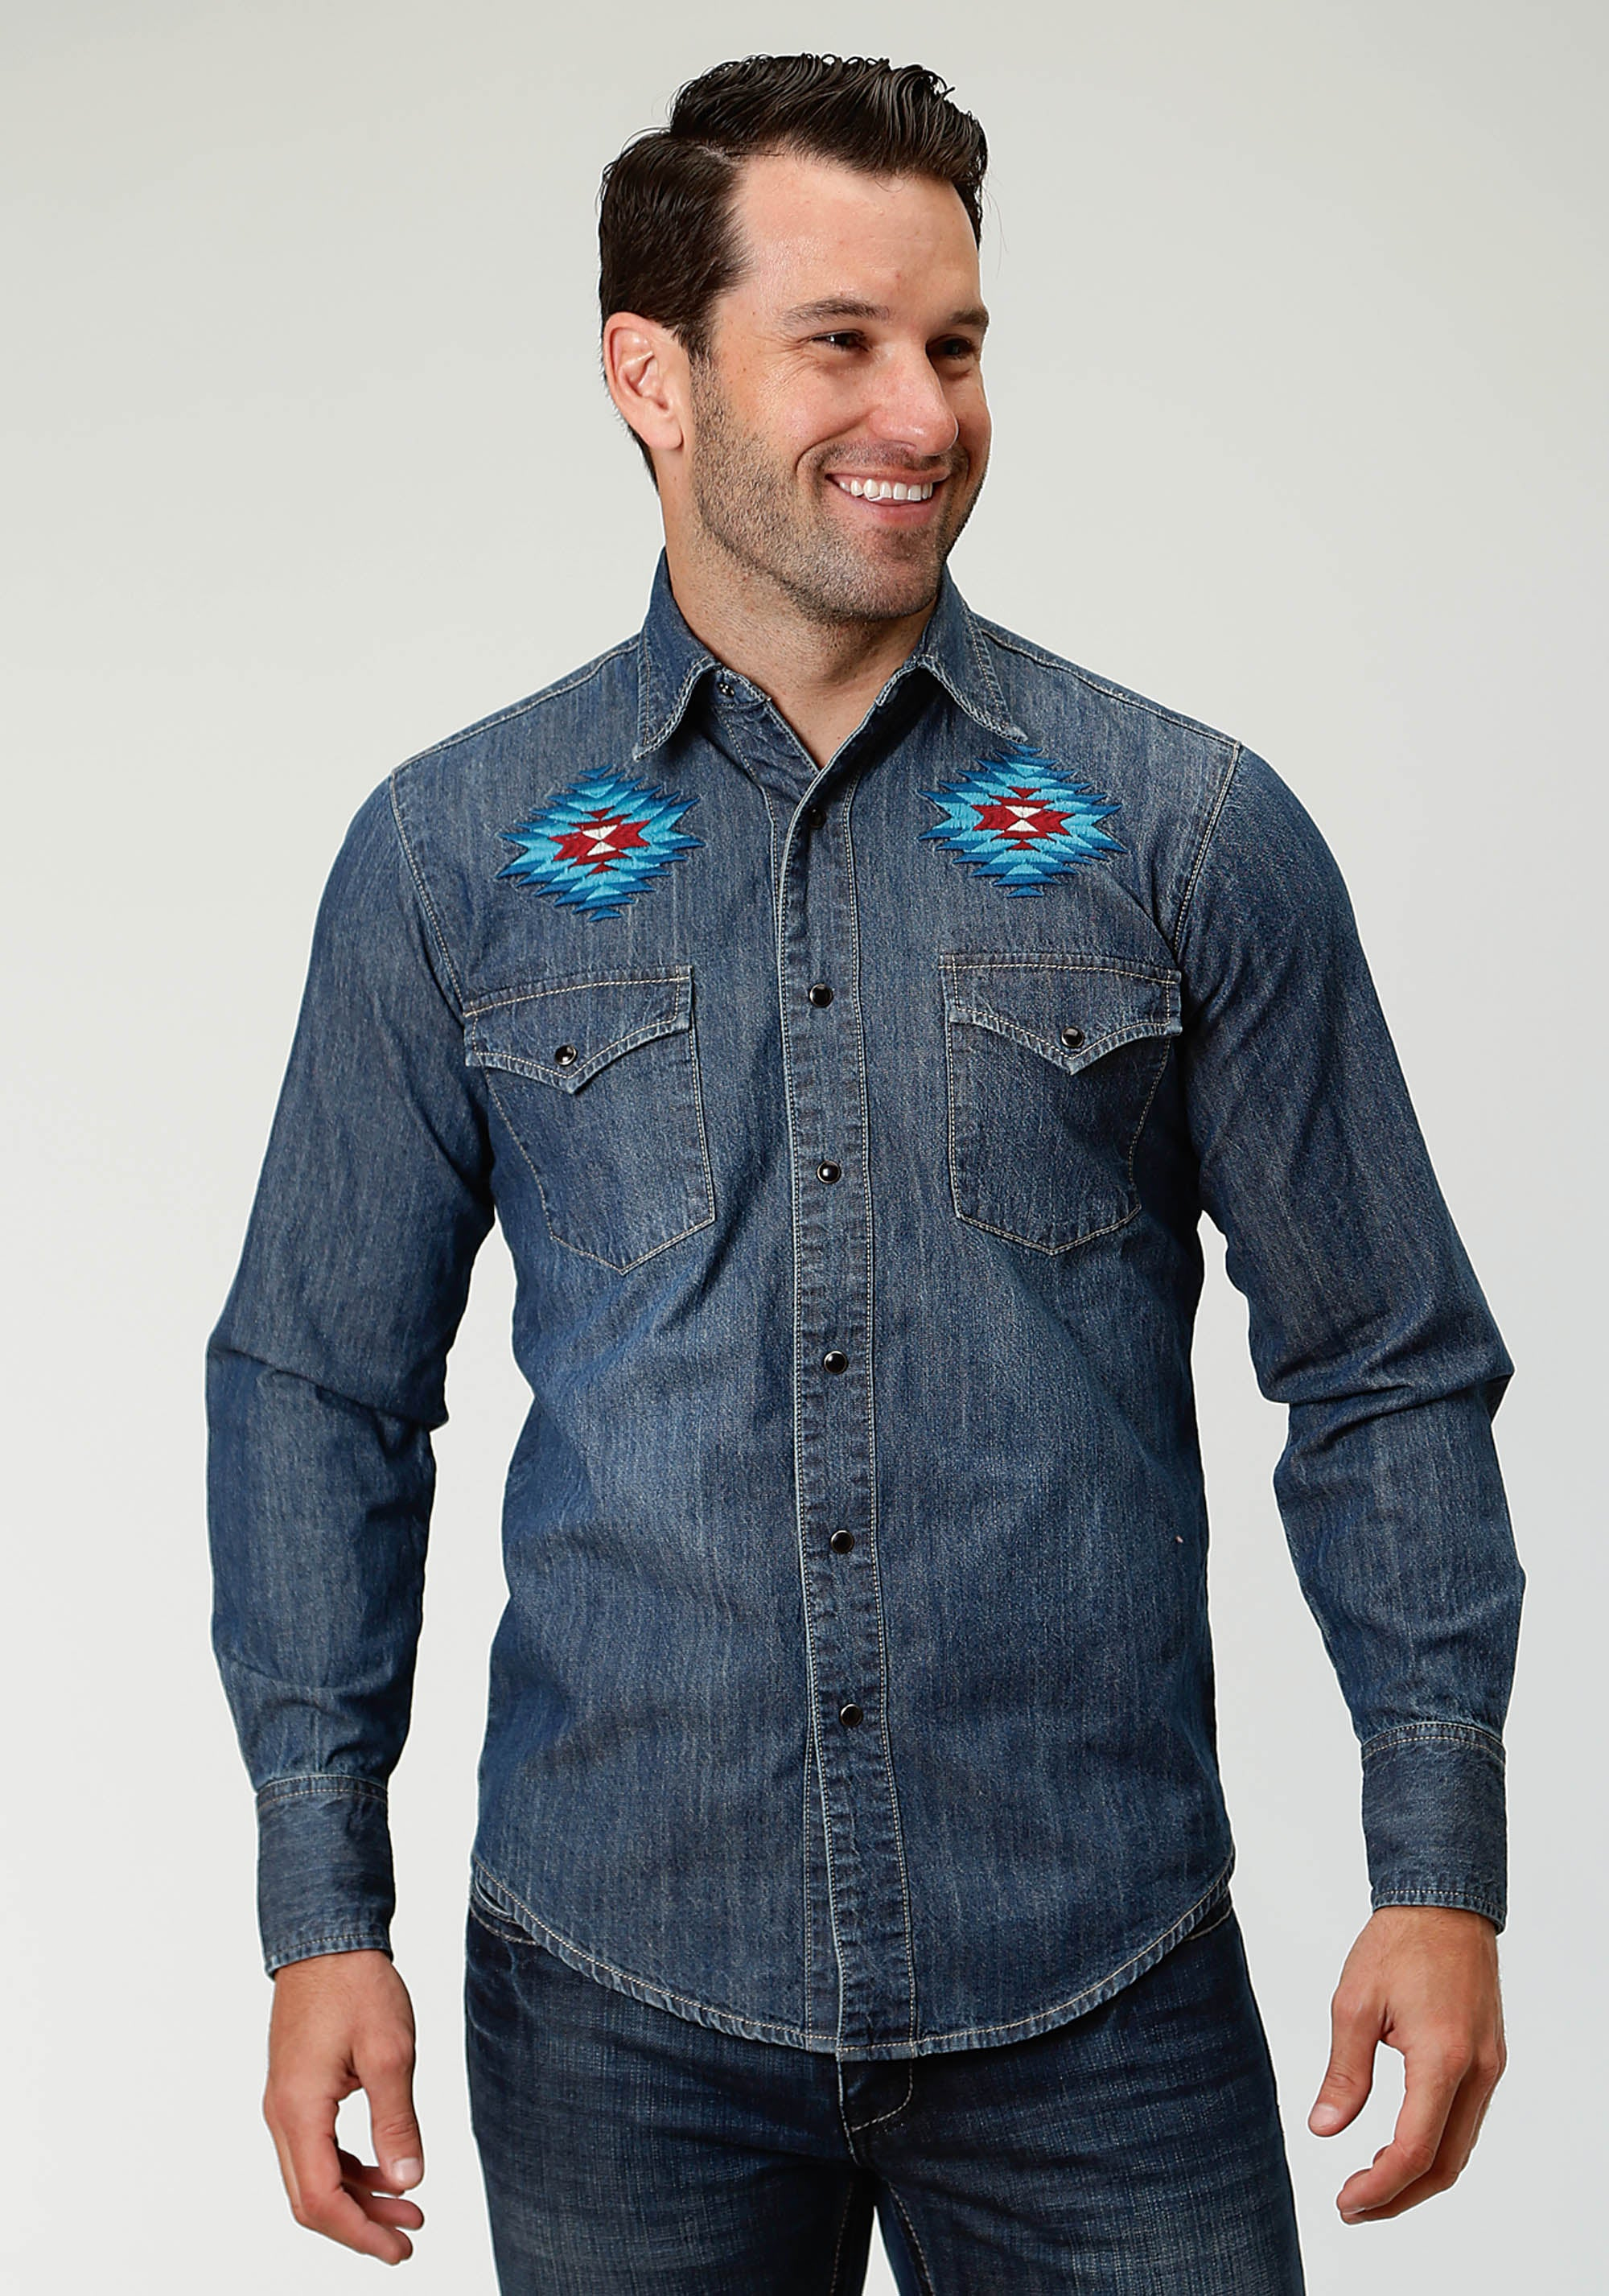 ROPER MENS BLUE 6 OZ DENIM SHIRT W/EAGLE EMB ON BACK MEN'S AMERICANA COLLECTION LONG SLEEVE